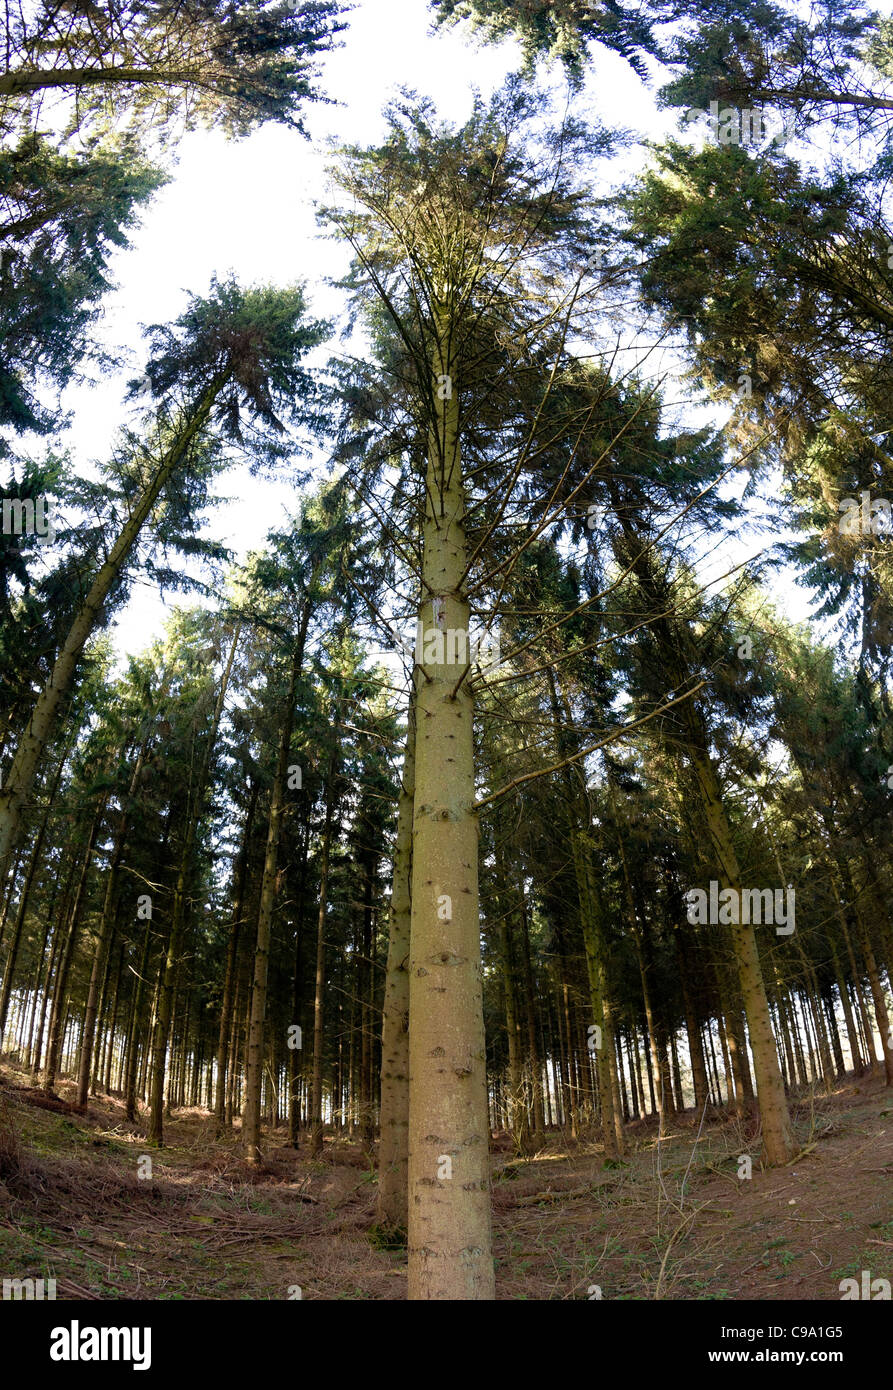 Norway spruce (Picea abies) plantation - Stock Image